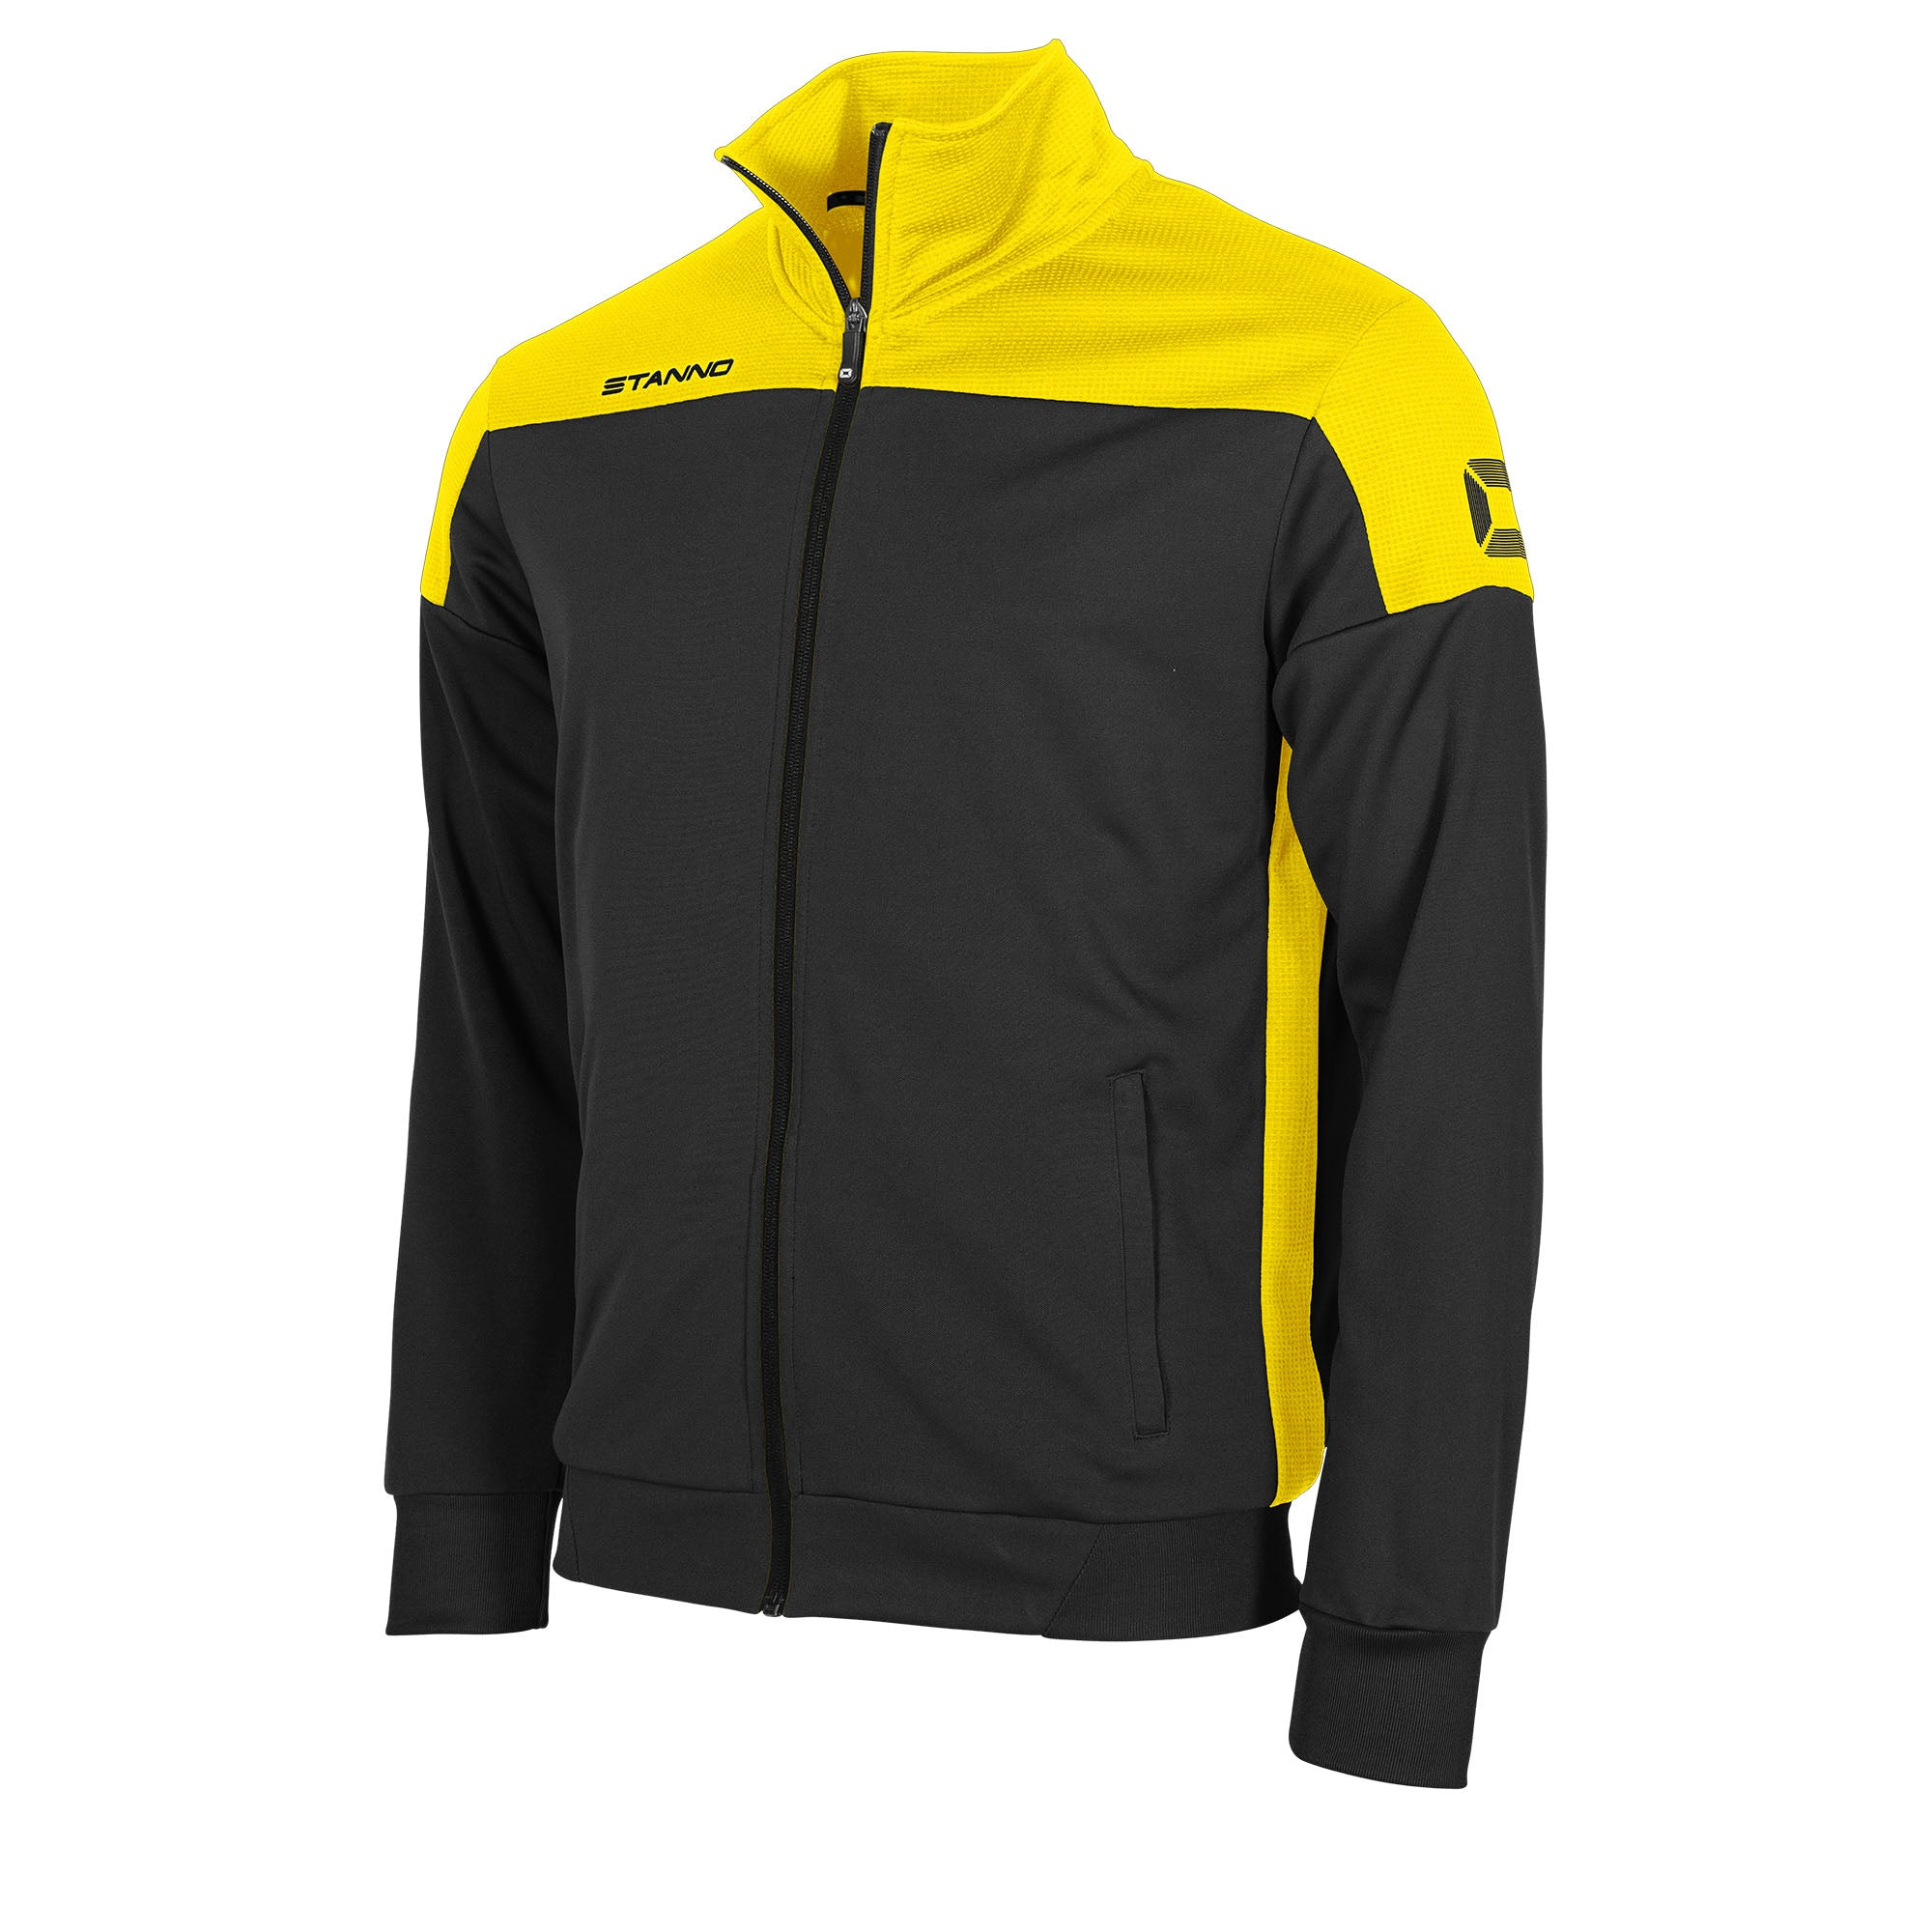 Stanno Pride TTS Jacket full zip in black with yellow contrast shoulders and side panel